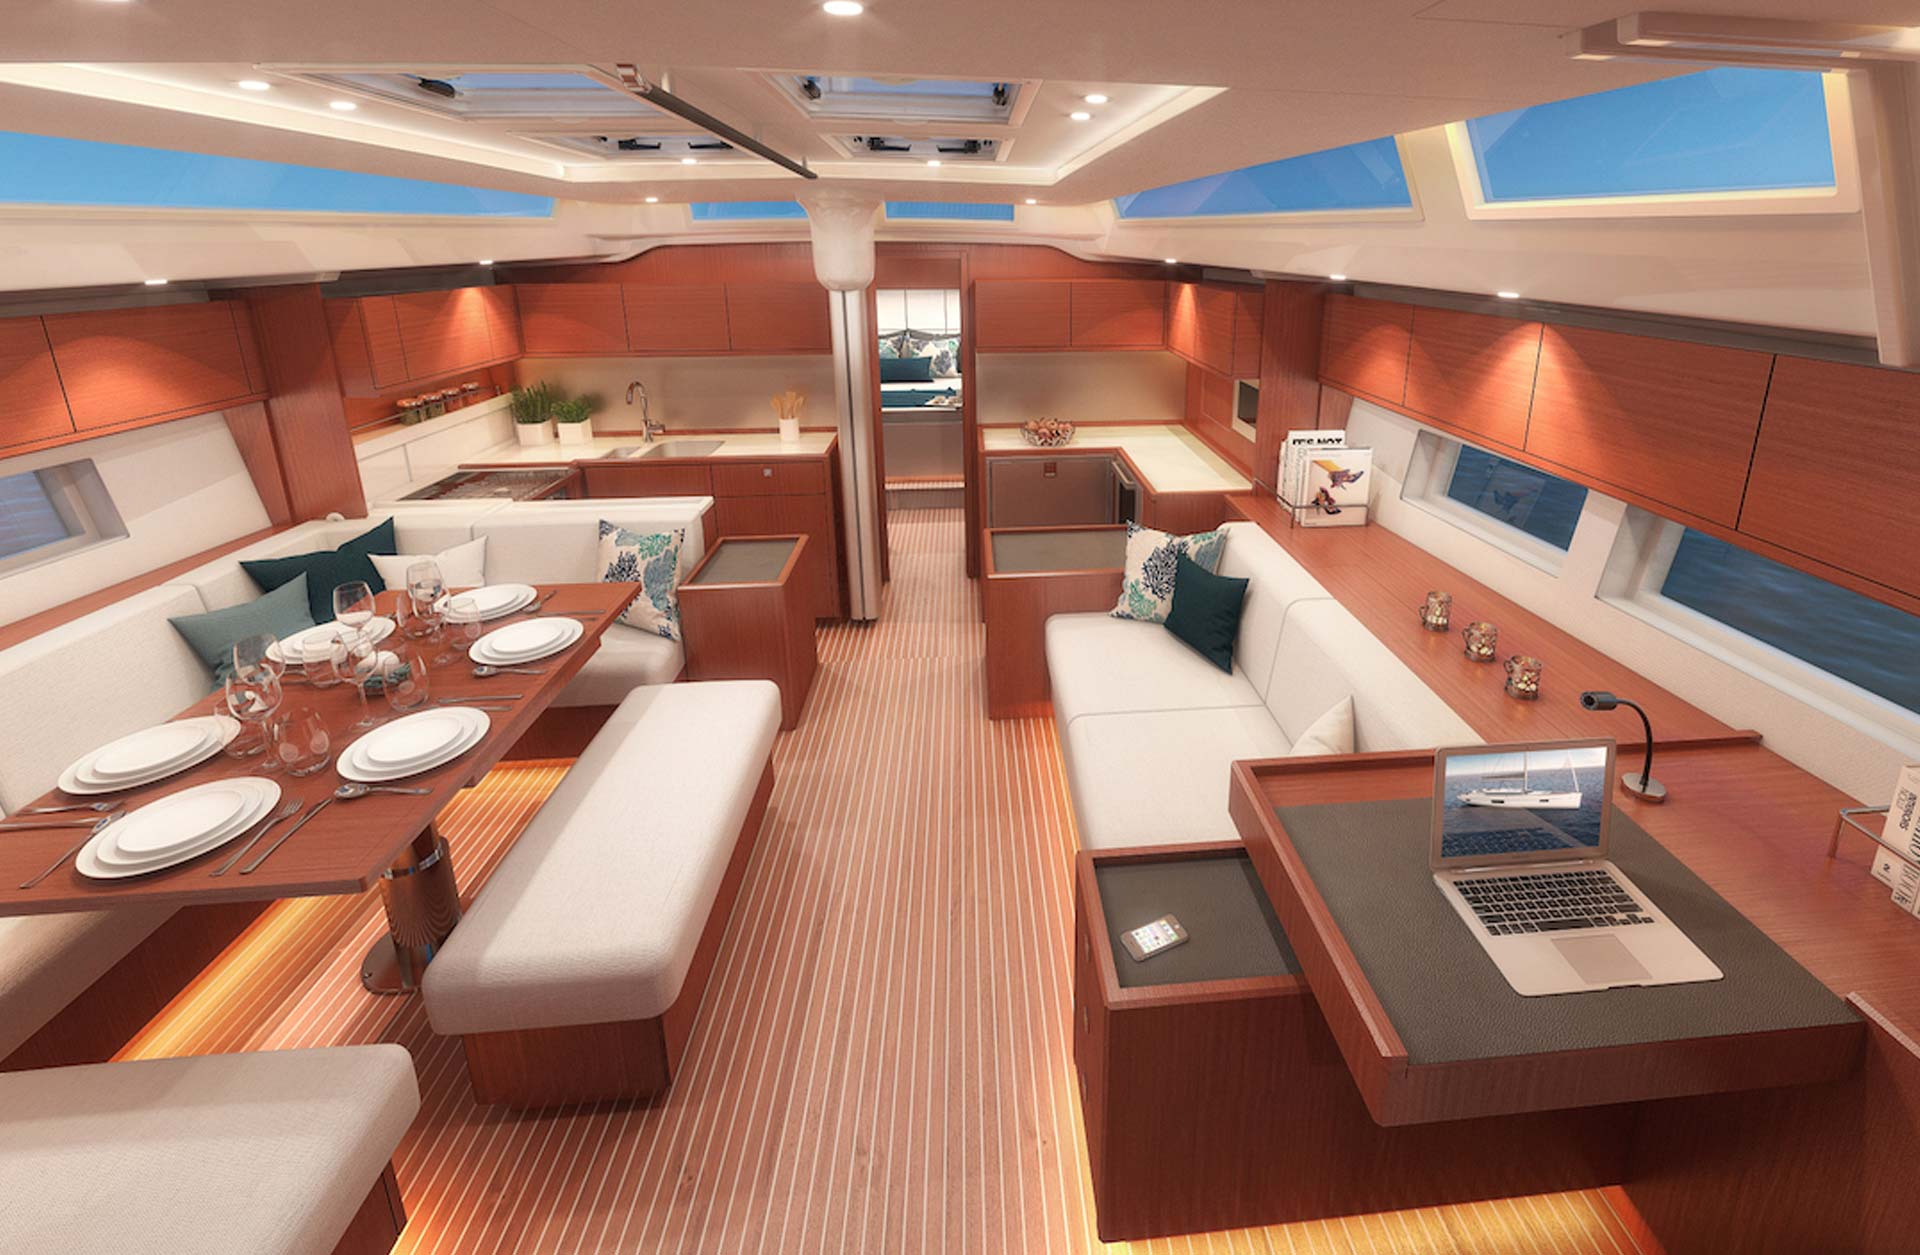 Used C57 Boats for Sale - Interior